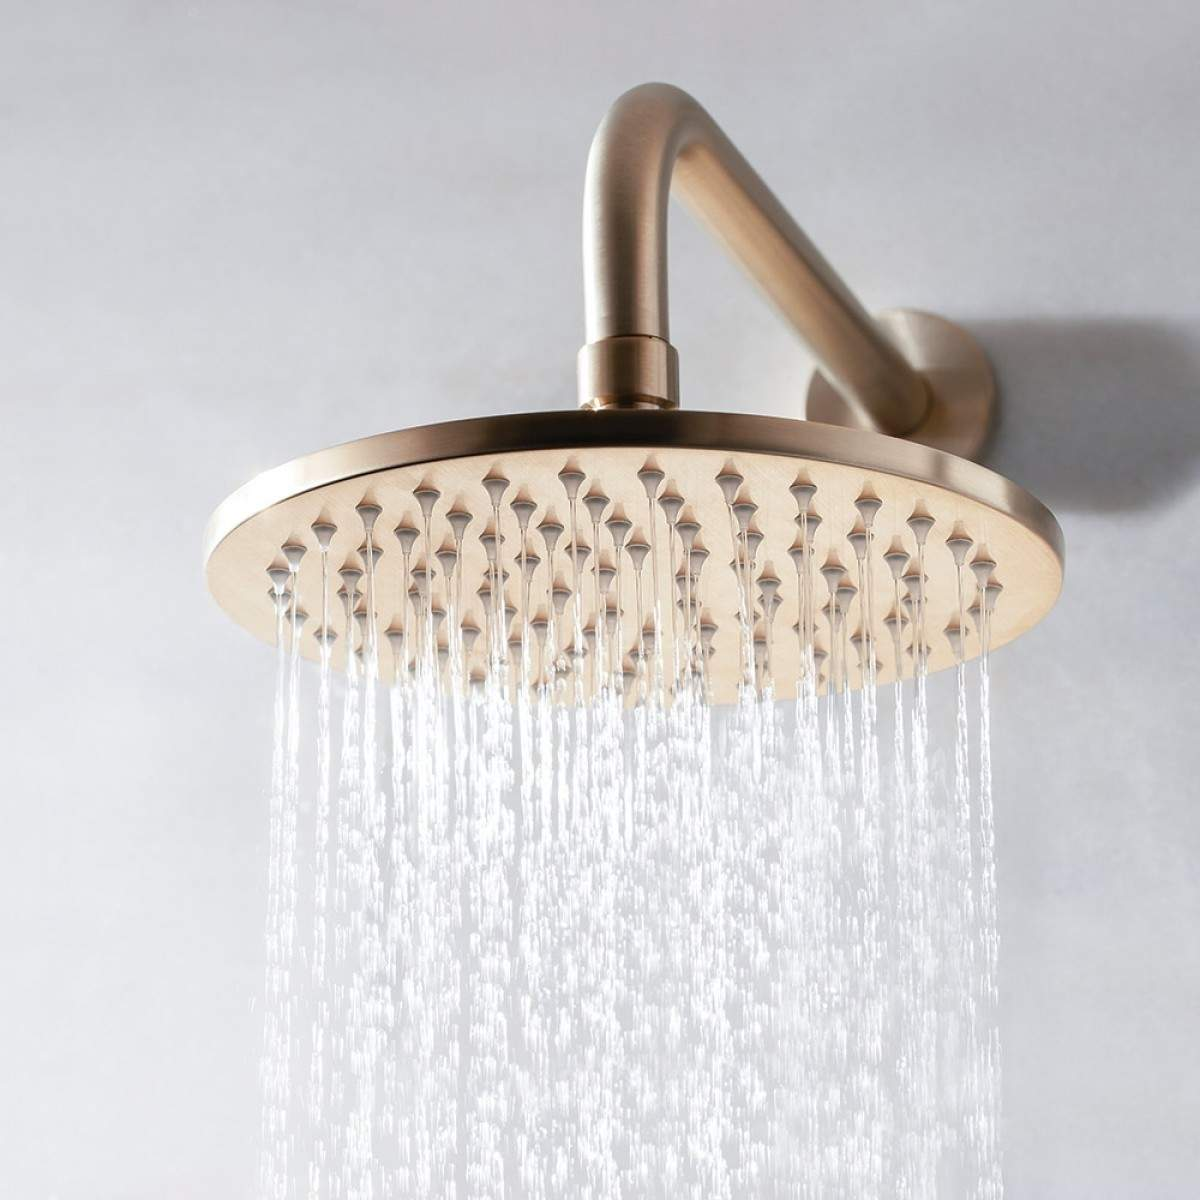 BathSelect Rio Round Stainless Steel Wall Mount Rainfall Shower Head In Brushed Gold Finish